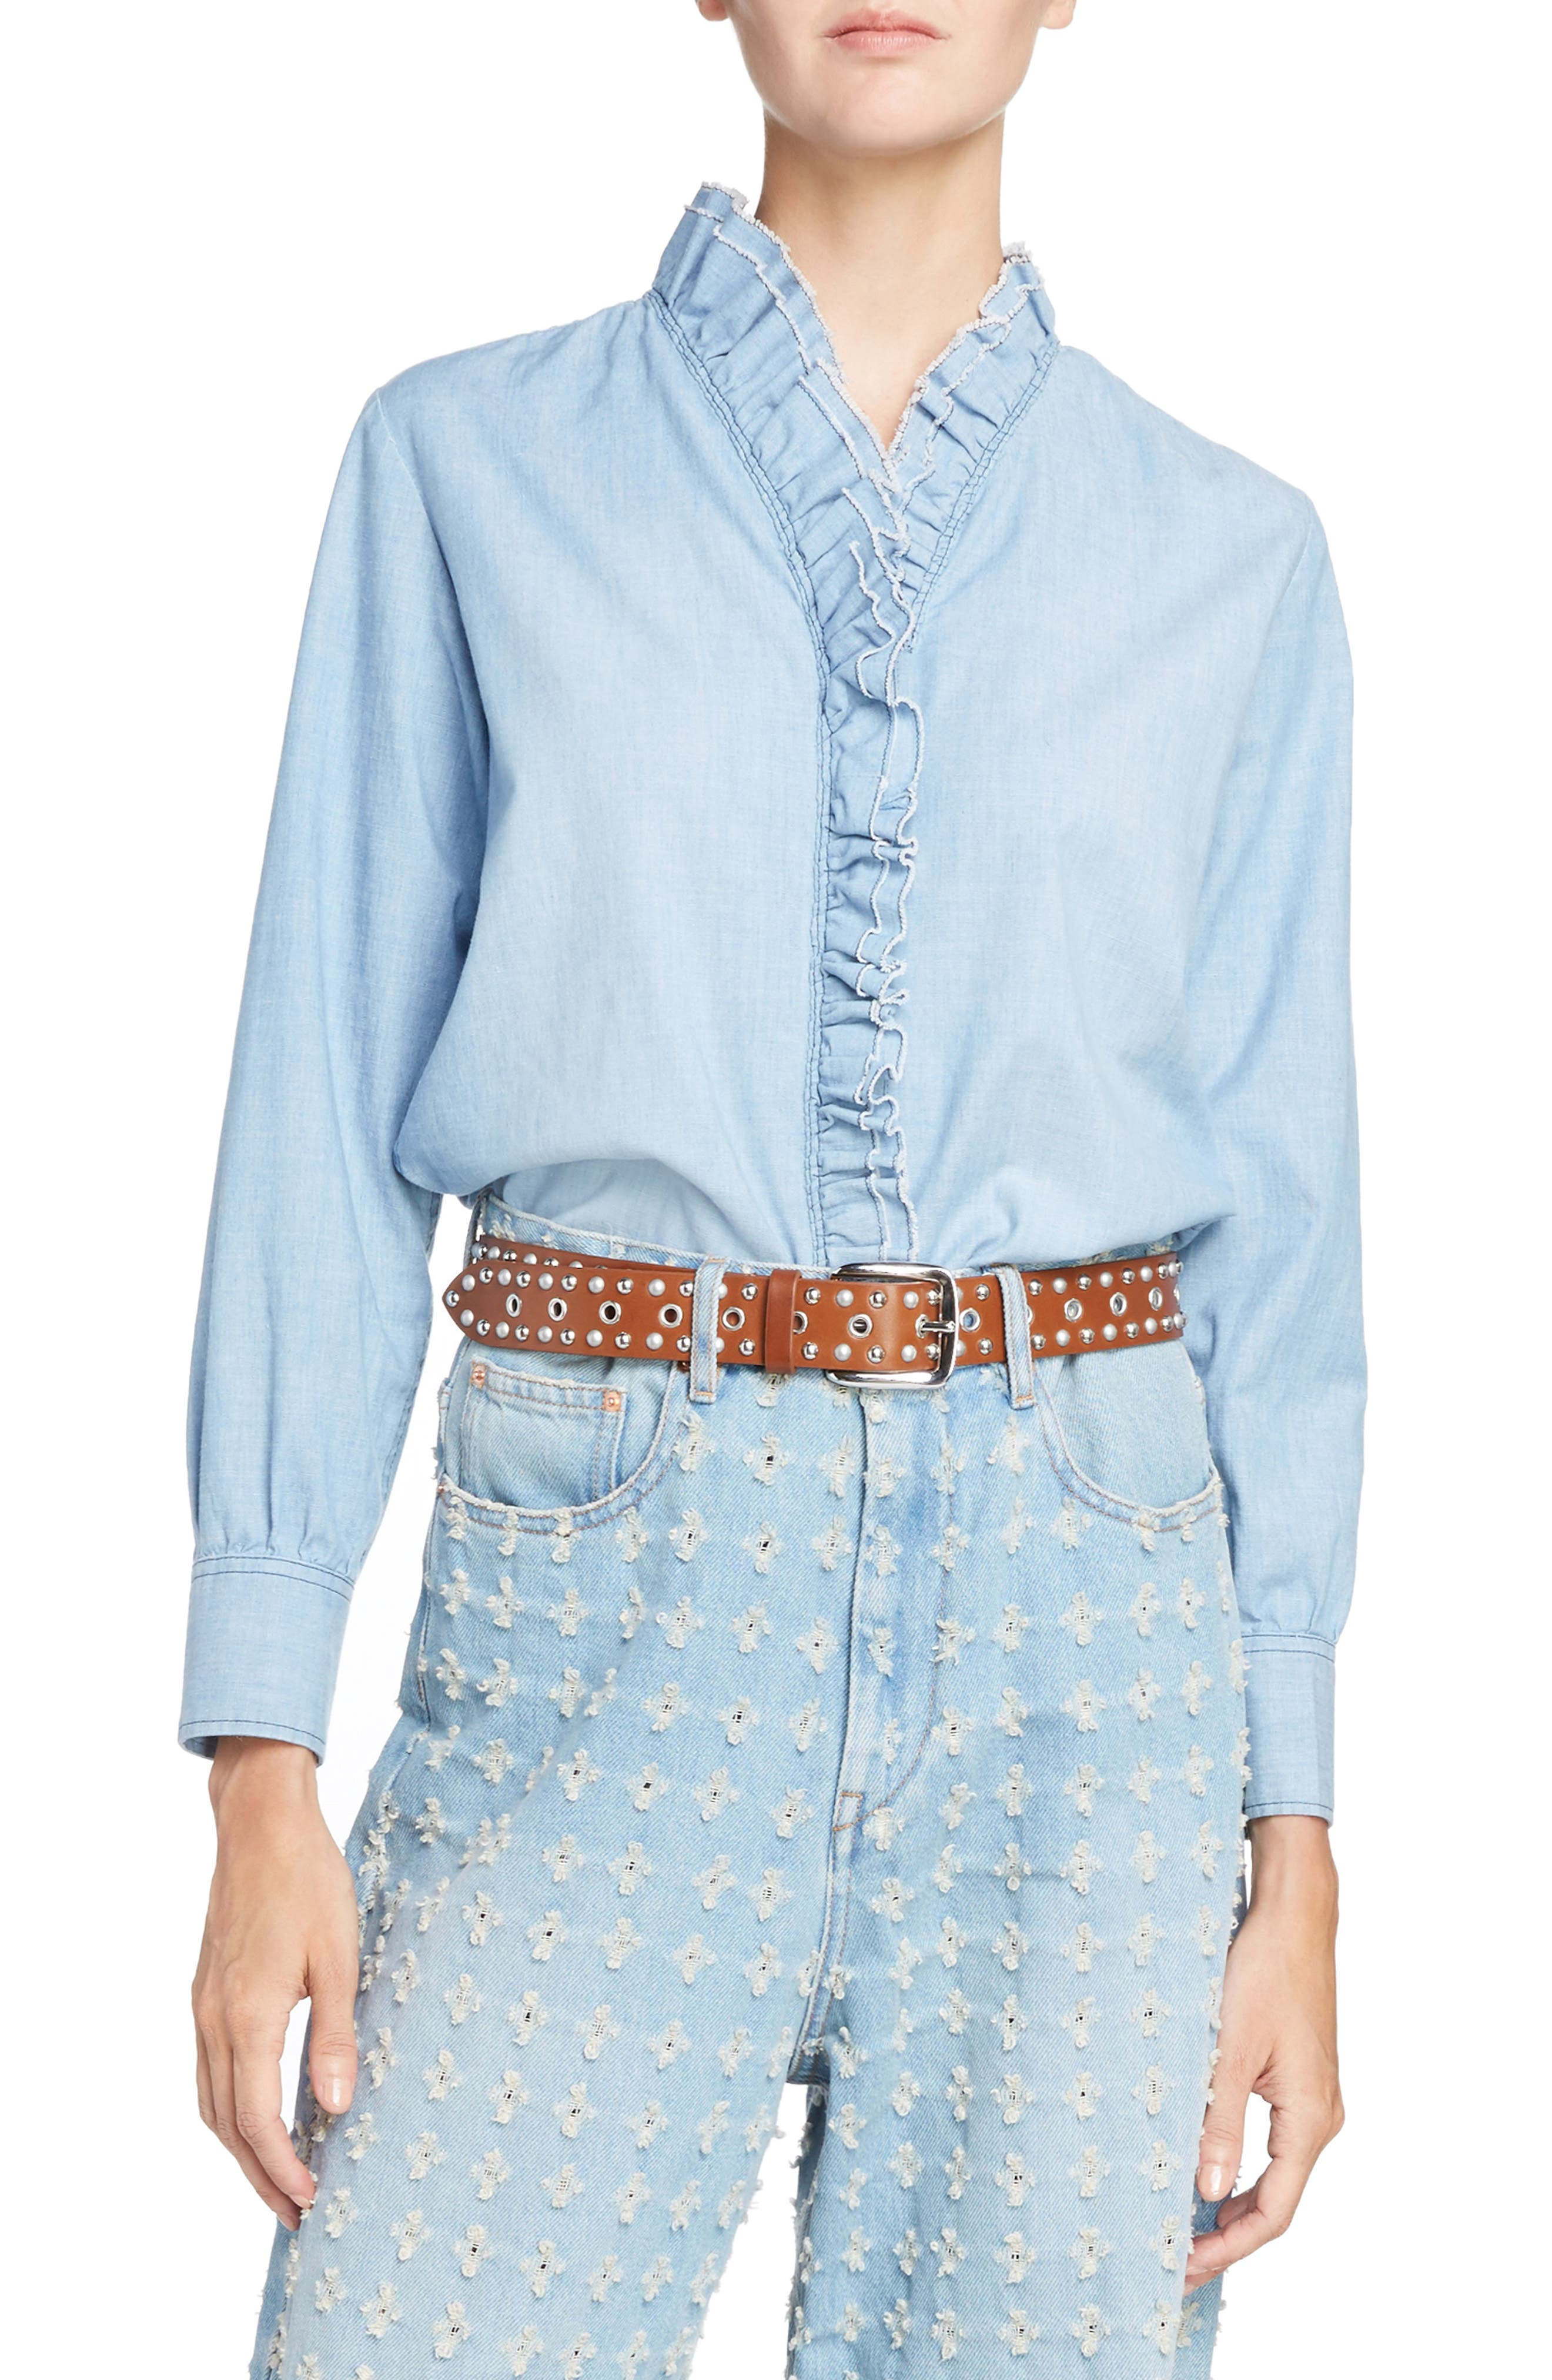 Isabel Marant Étoile Lawendy Ruffle Chambray Top